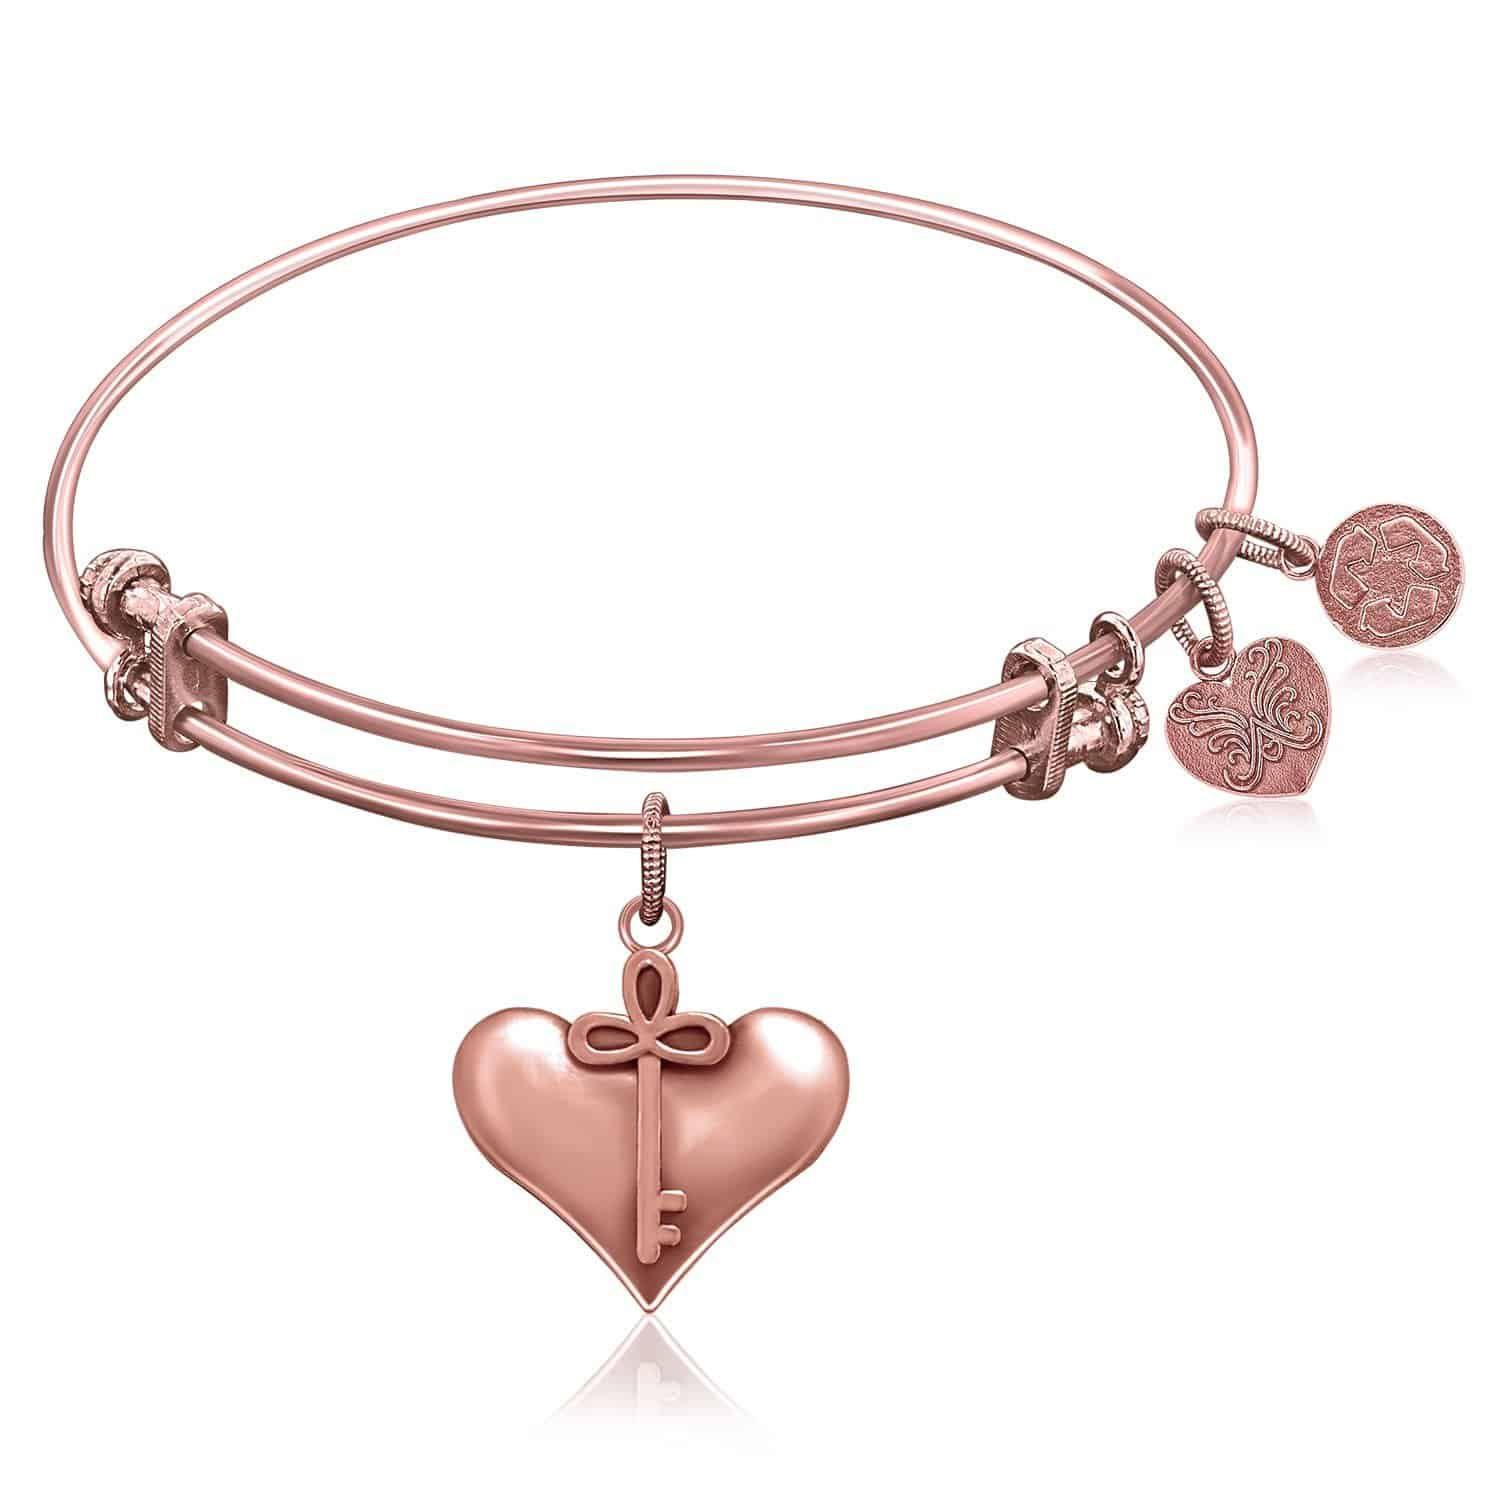 Expandable Bangle in Pink Tone Brass with Cherish Symbol